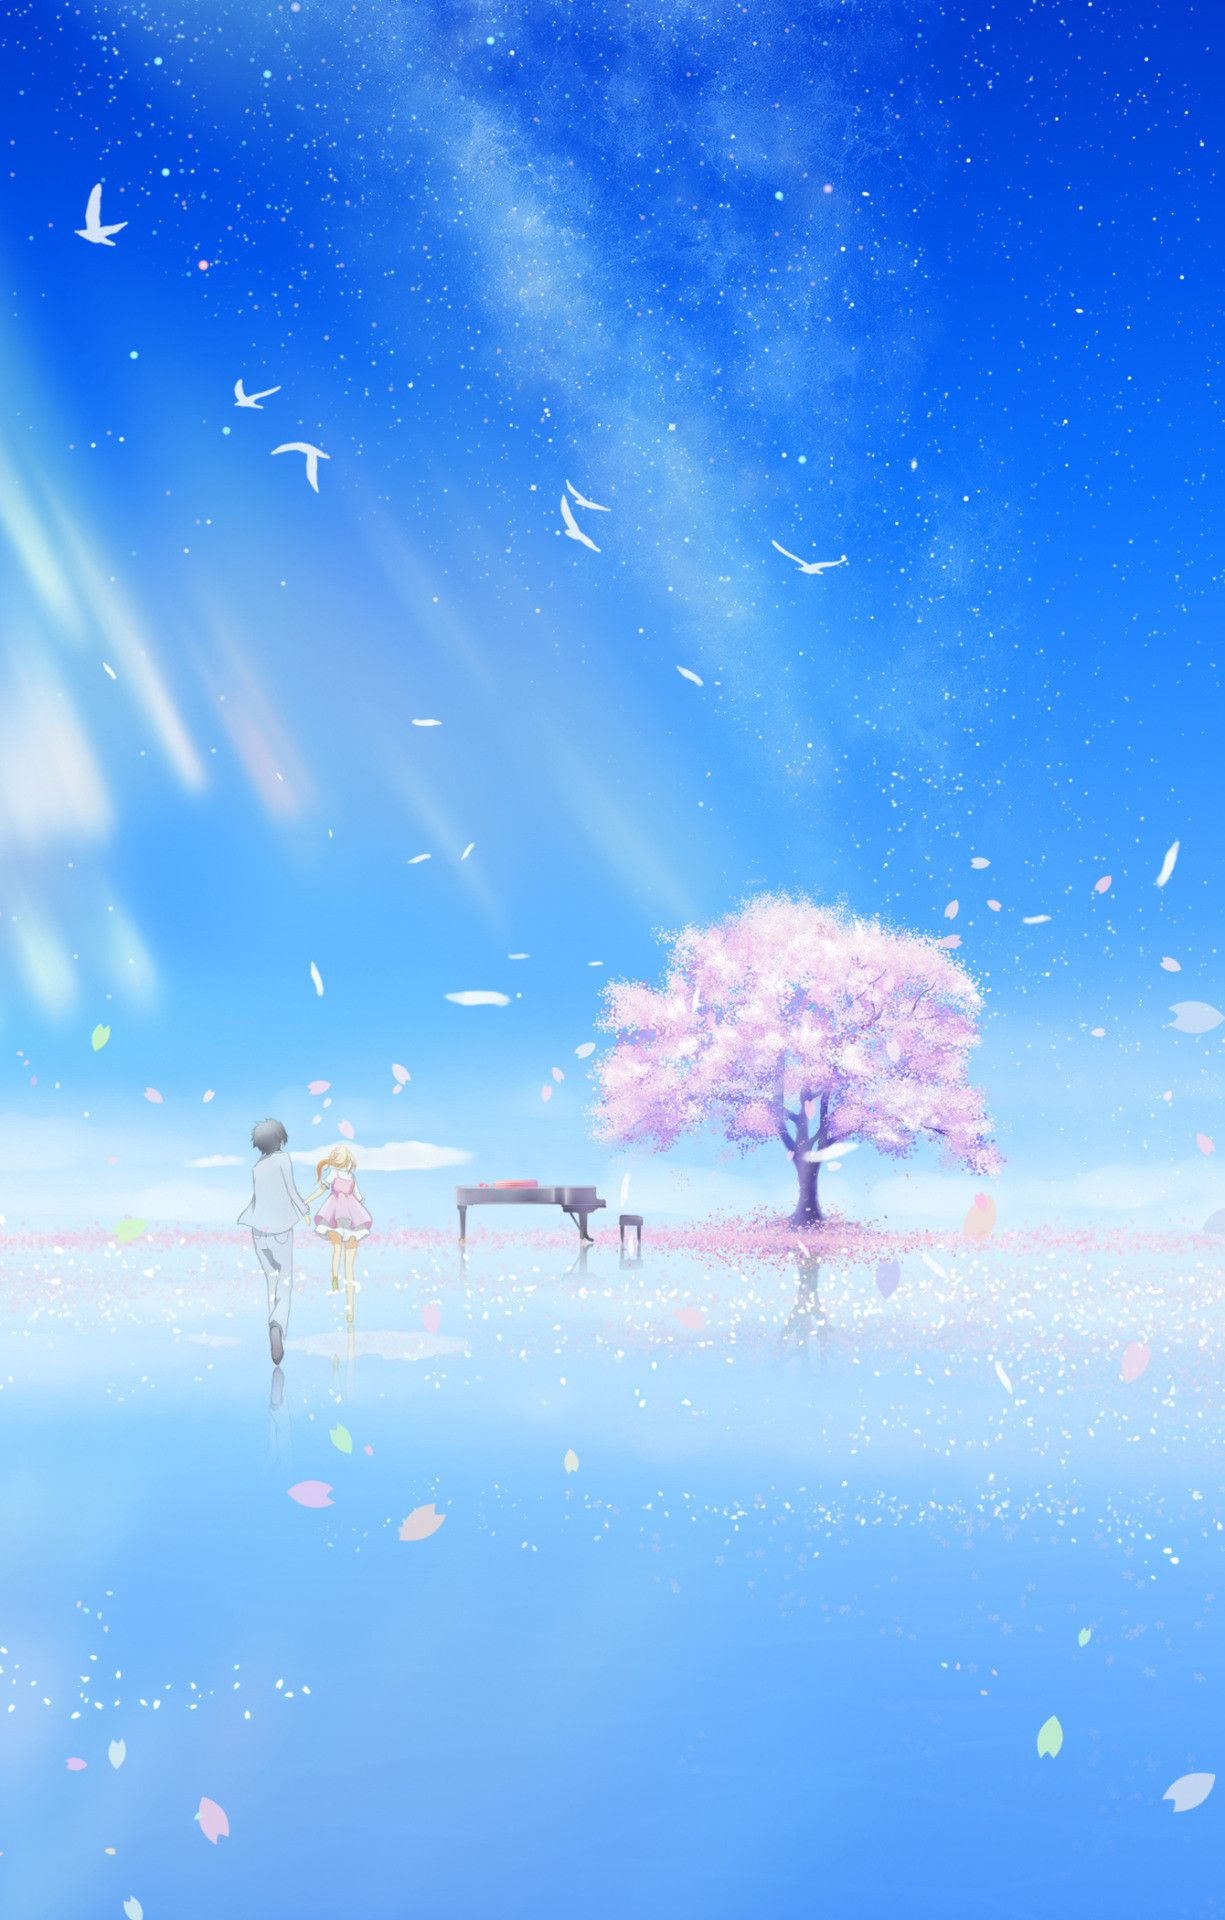 1225x1920 Let S Go On An Adventure Together Your Lie In April Anime Scenery Scenery Wallpaper Aesthetic your lie in april wallpaper